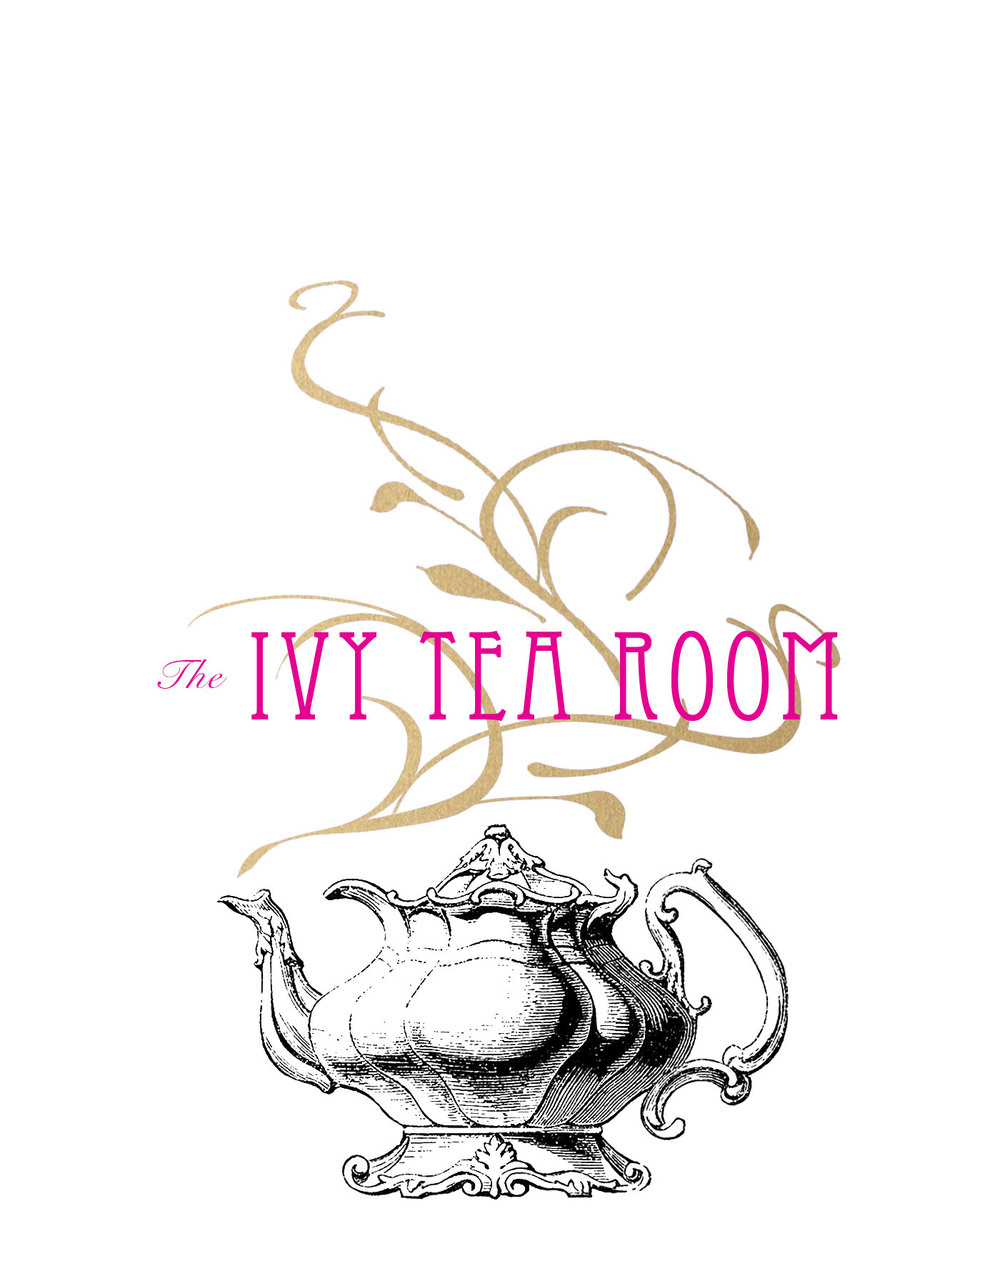 The-Ivy-Tea-Room-logo.jpg